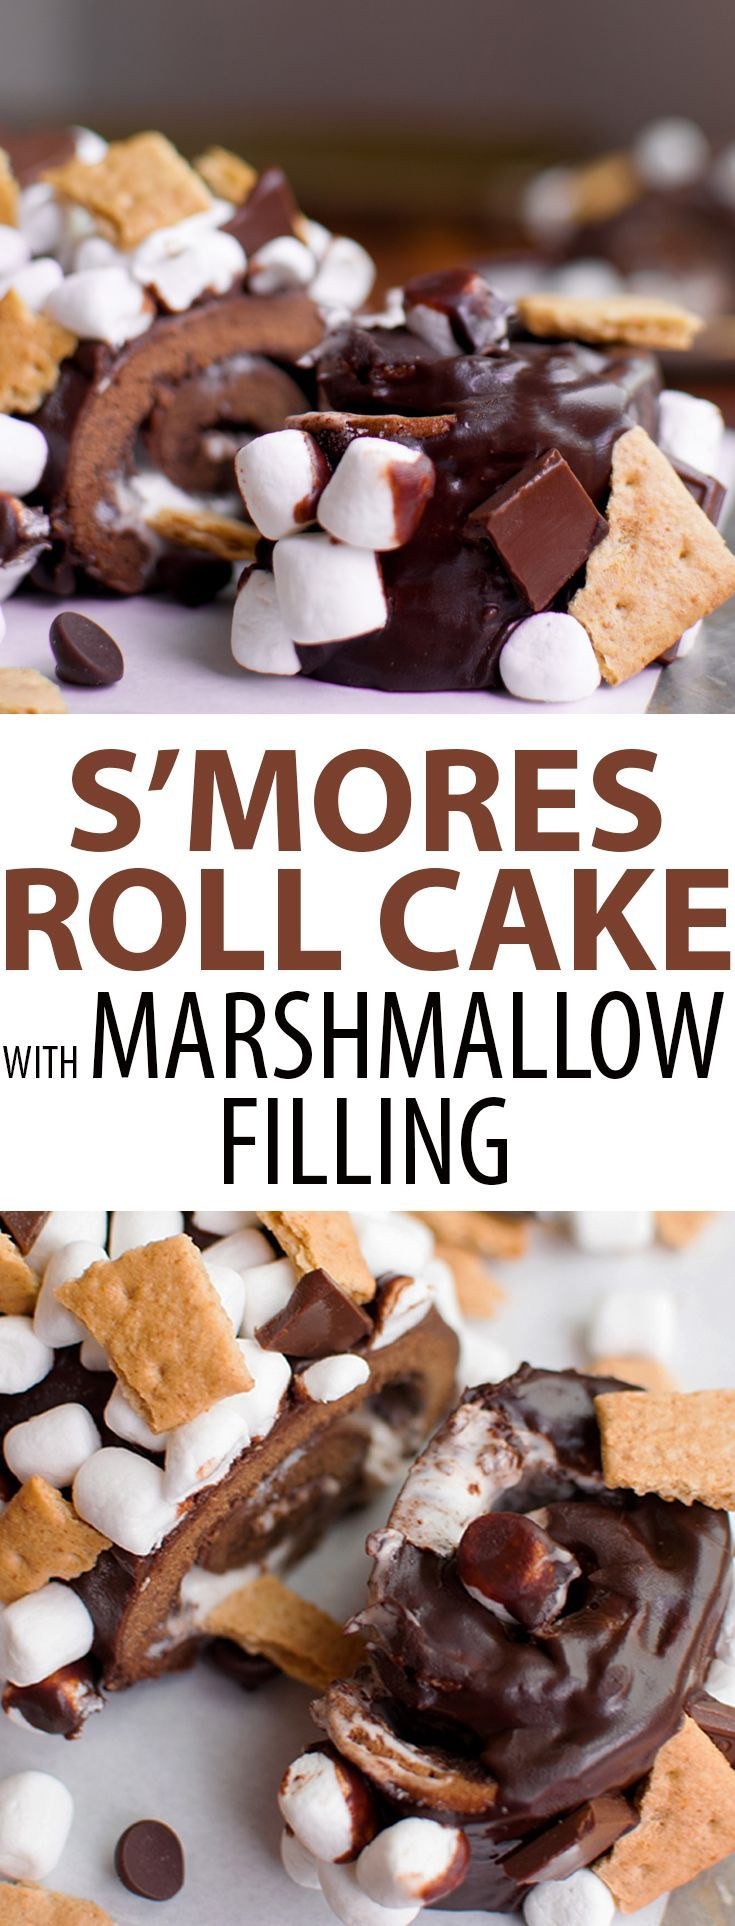 Best 25+ Marshmallow cake ideas on Pinterest | Chocolate ...